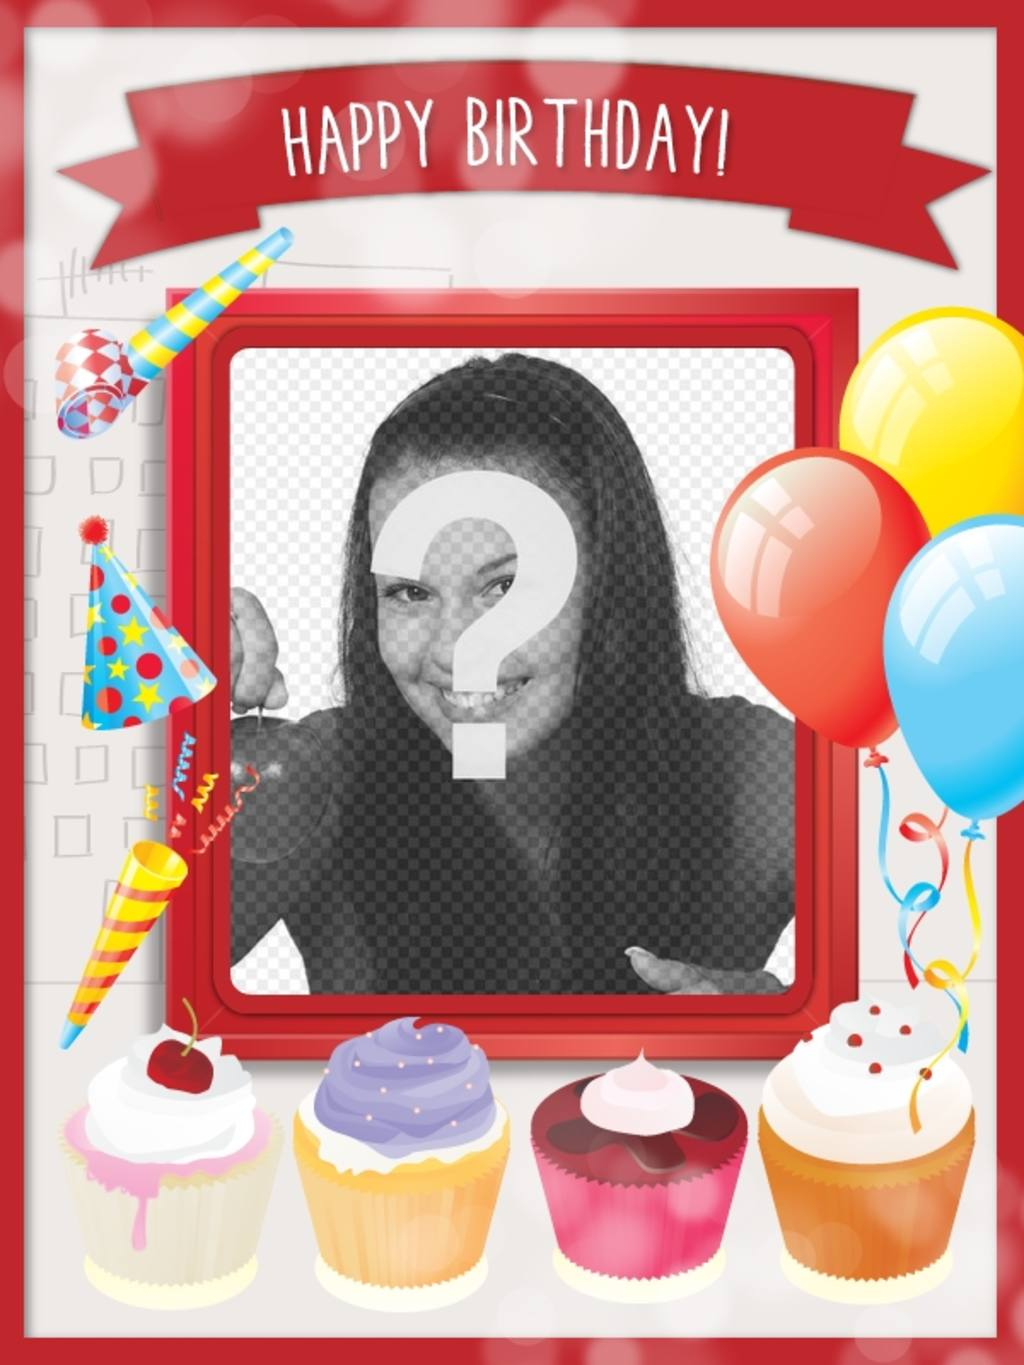 Birthday card with sweet cakes and festive decoration with balloons and red frame to put a picture